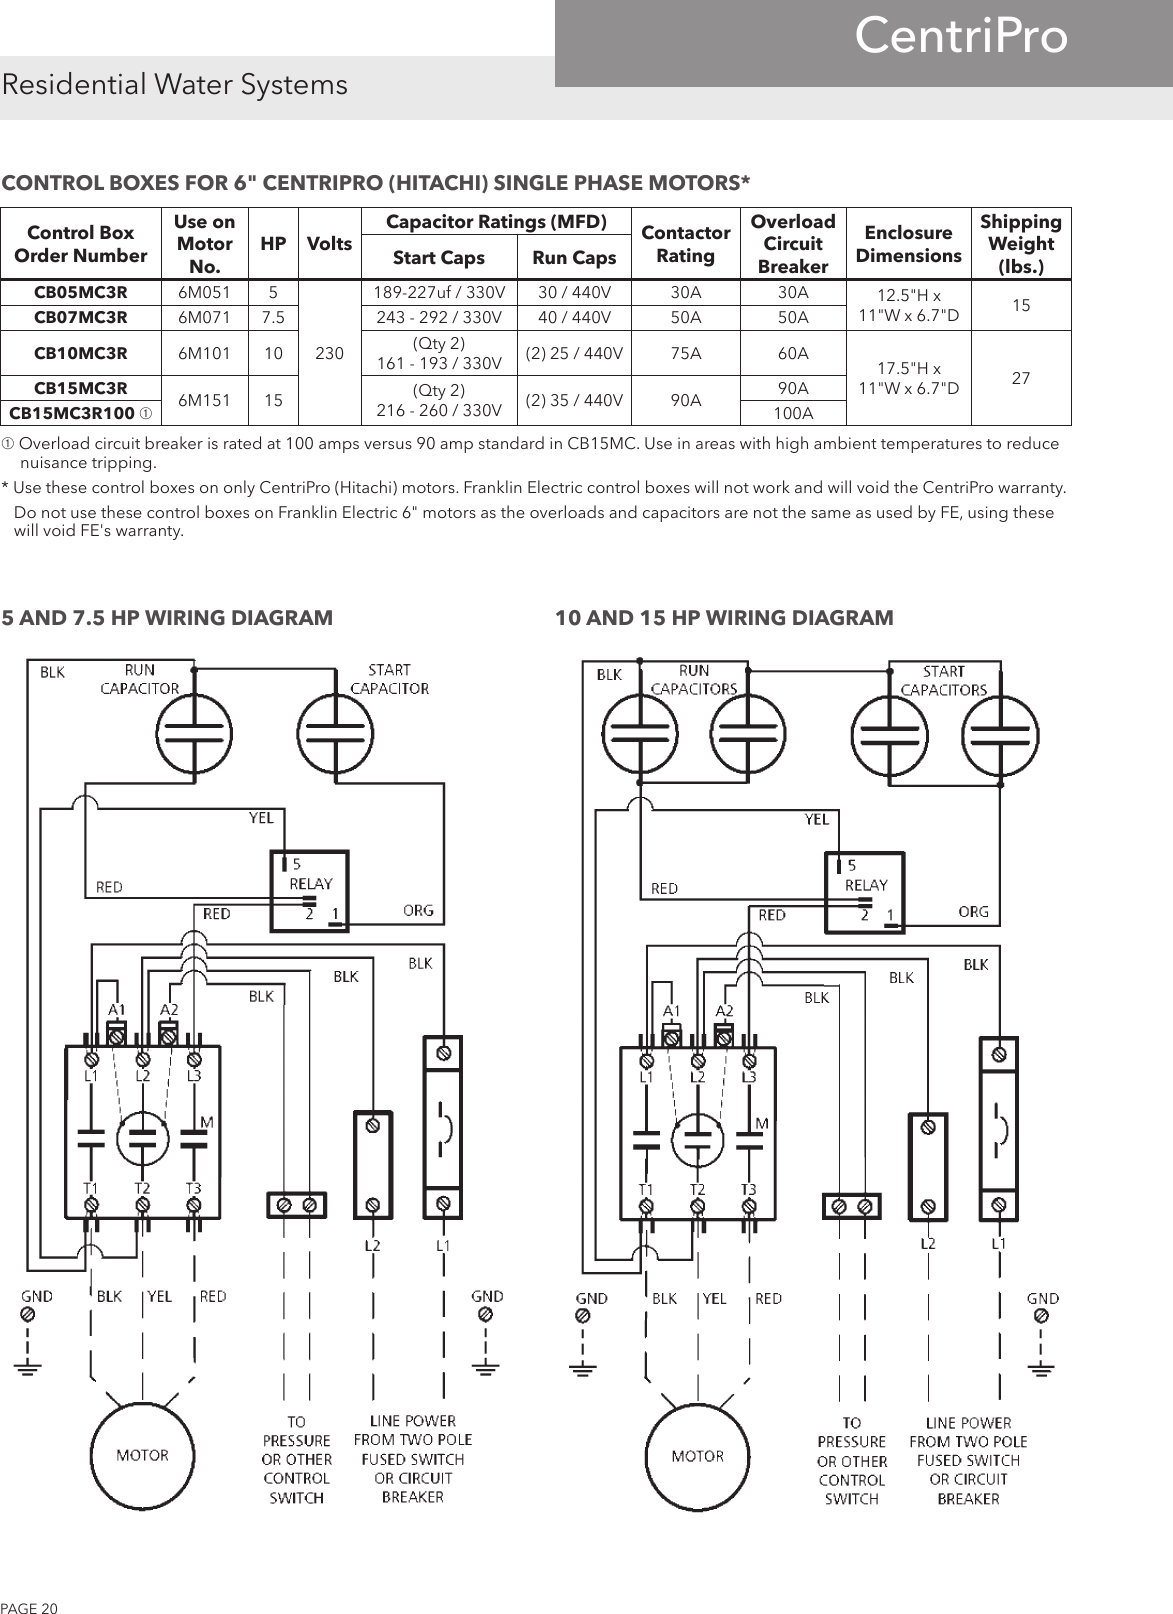 Wiring Diagram As Well Bathroom Exhaust Fan With Light Wiring Diagram